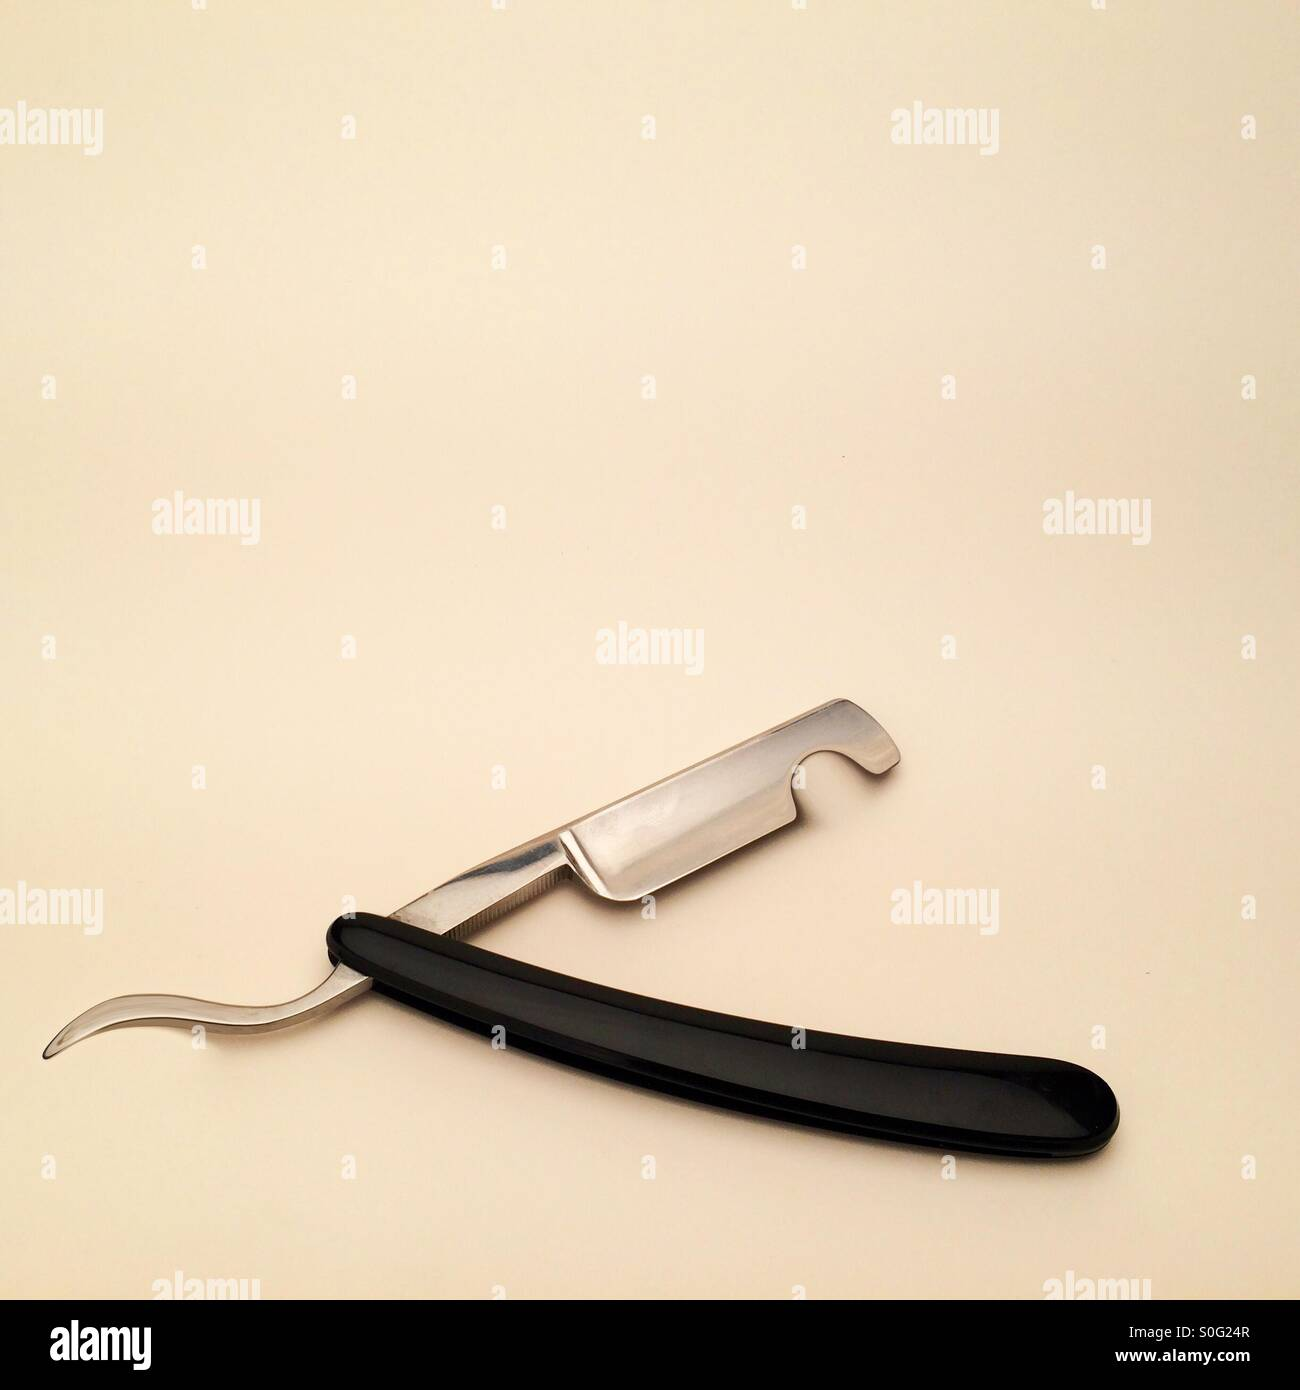 Manipulated image showing a cut throat razor with a notch taken out of it, plenty of room for copy space - Stock Image